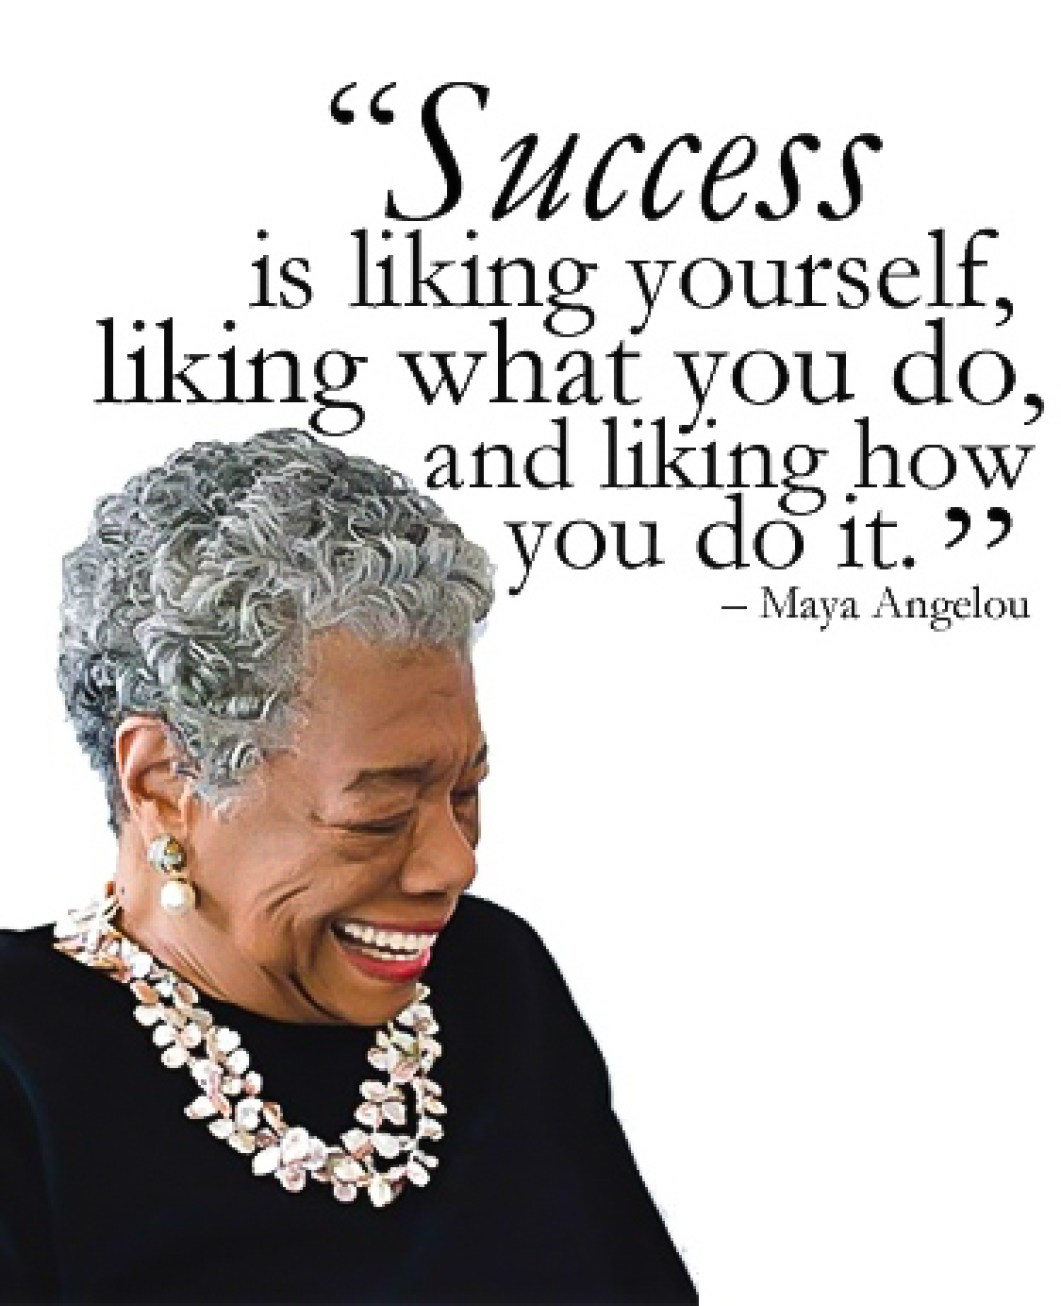 wise-women_maya-angelou-poetry_maya-angelou-books_maya-angelou-fashion-style_maya-angelou-quotes_wisdom_courage_great-role-models_blogger-role-models_women-who-changed-the-world